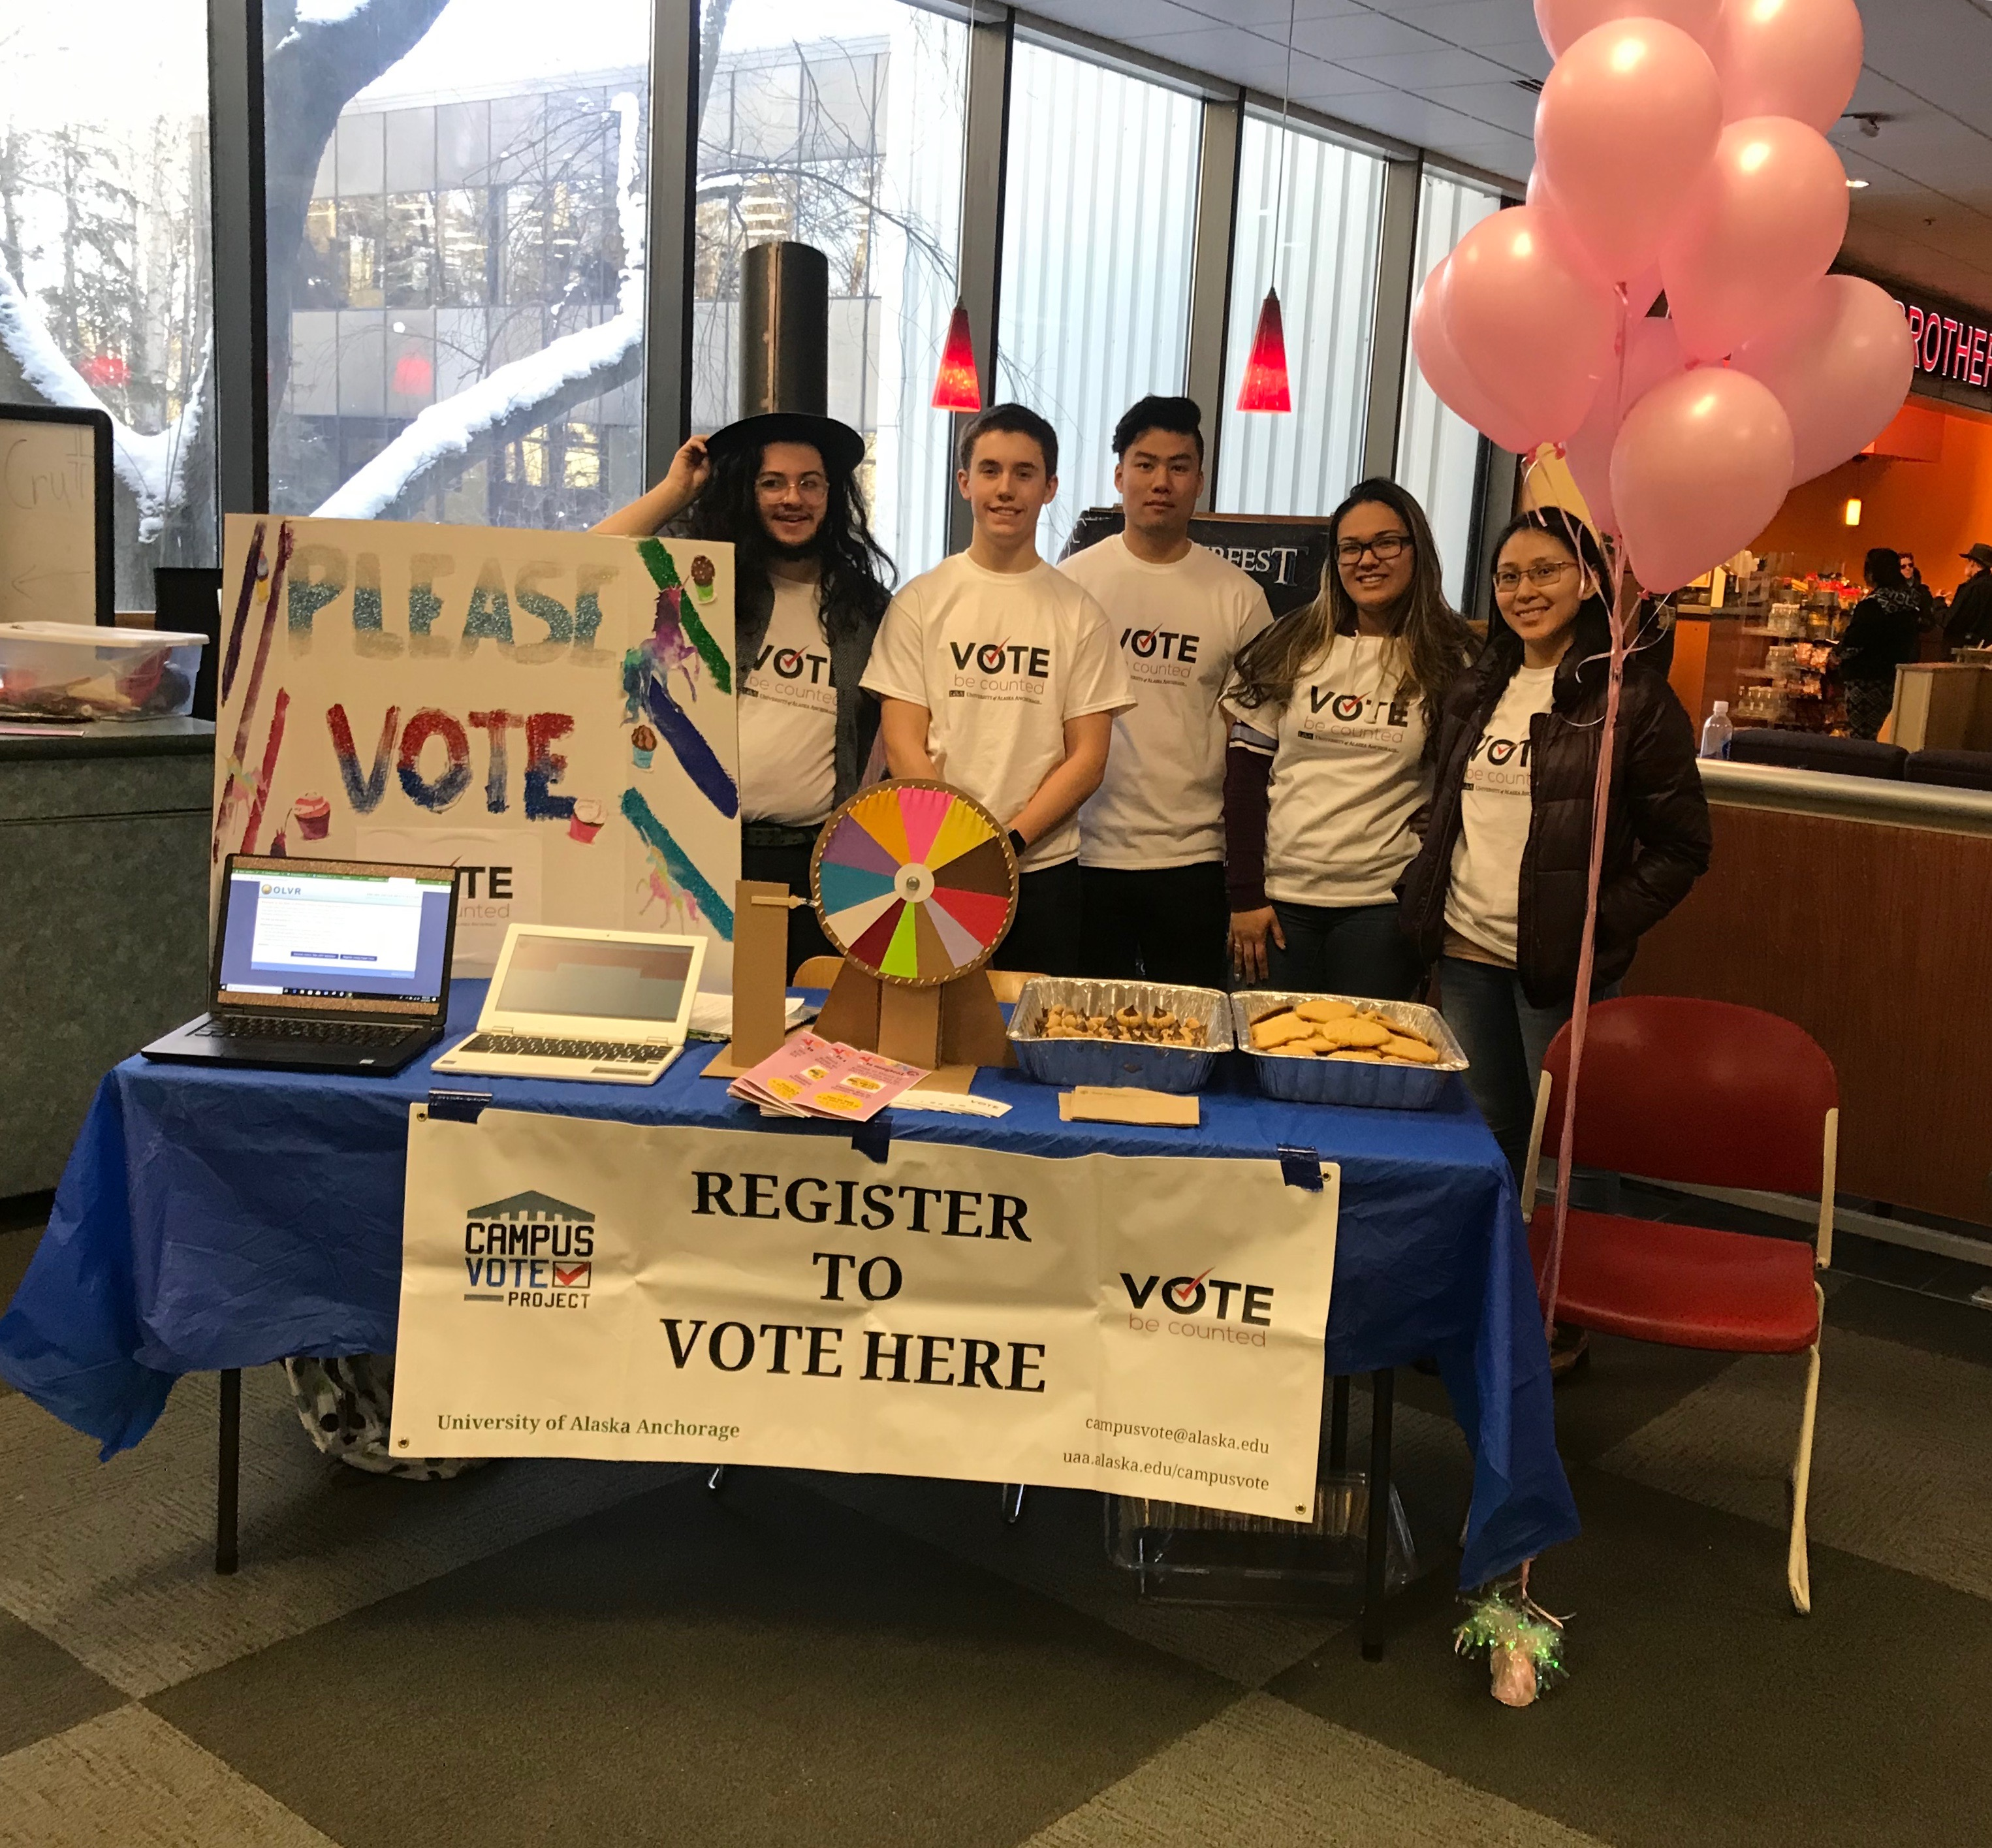 A group of students stands behind a table with information about voter registration